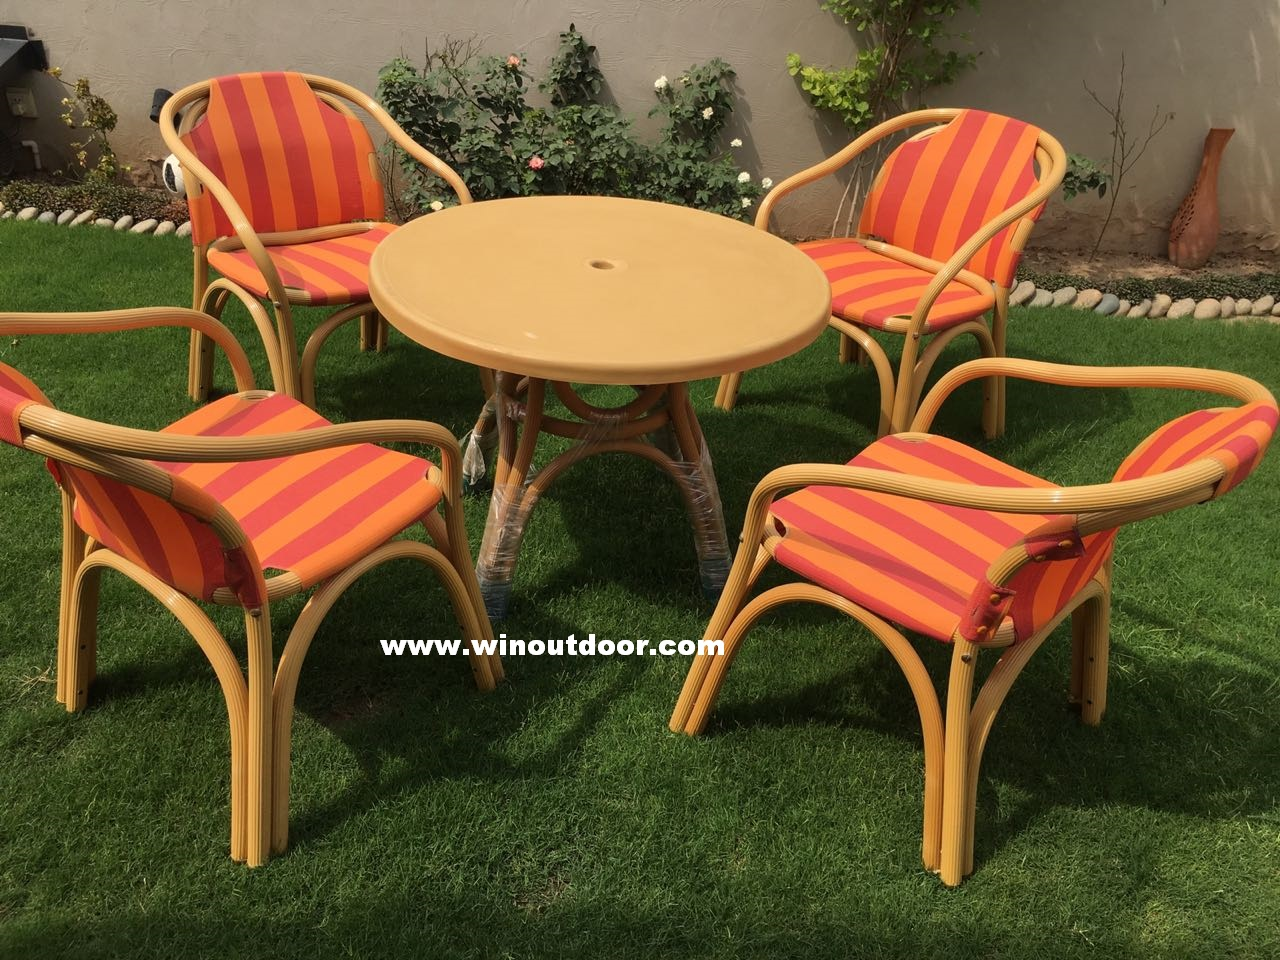 Heaven Outdoor Chairs Sd-8 Cane 8